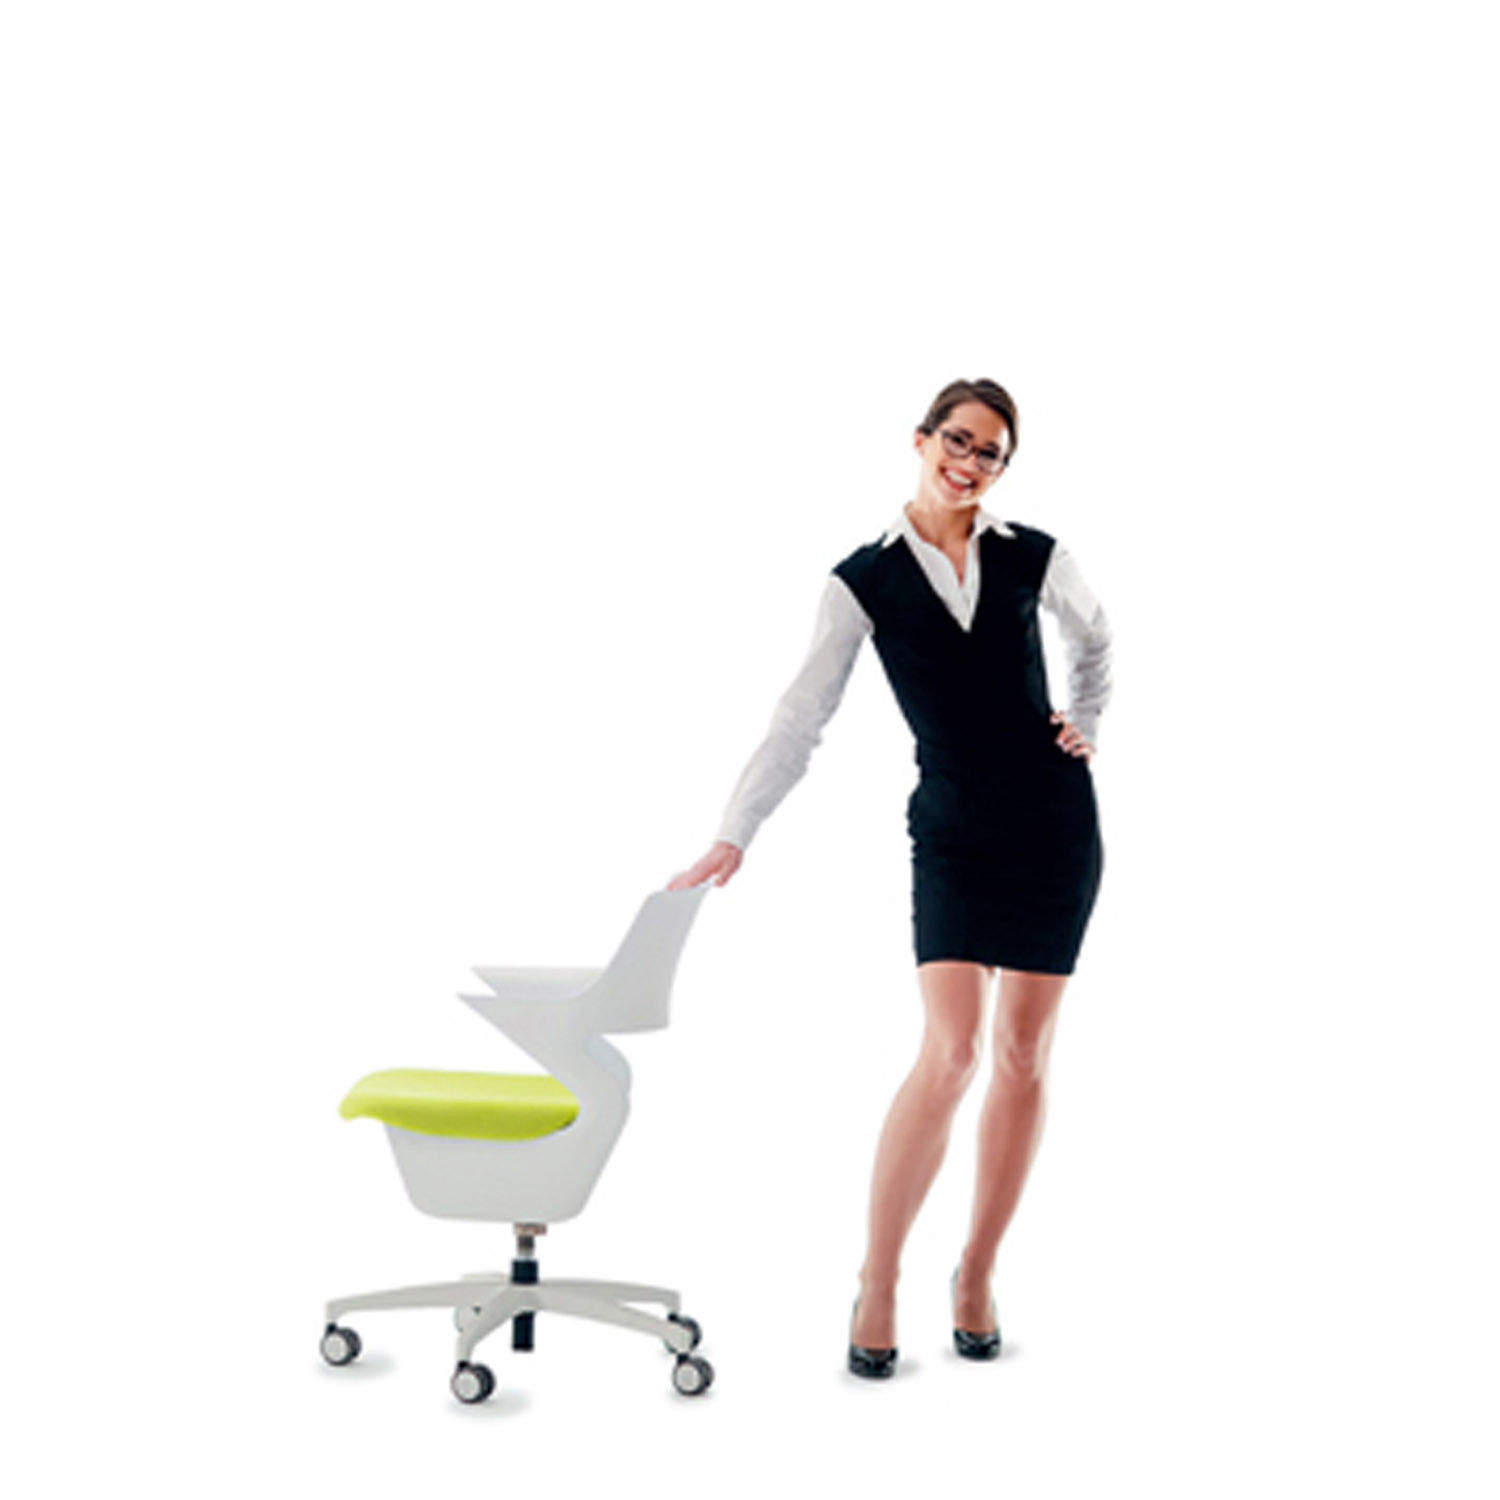 Sharko Swivel Chair from Mobica Plus